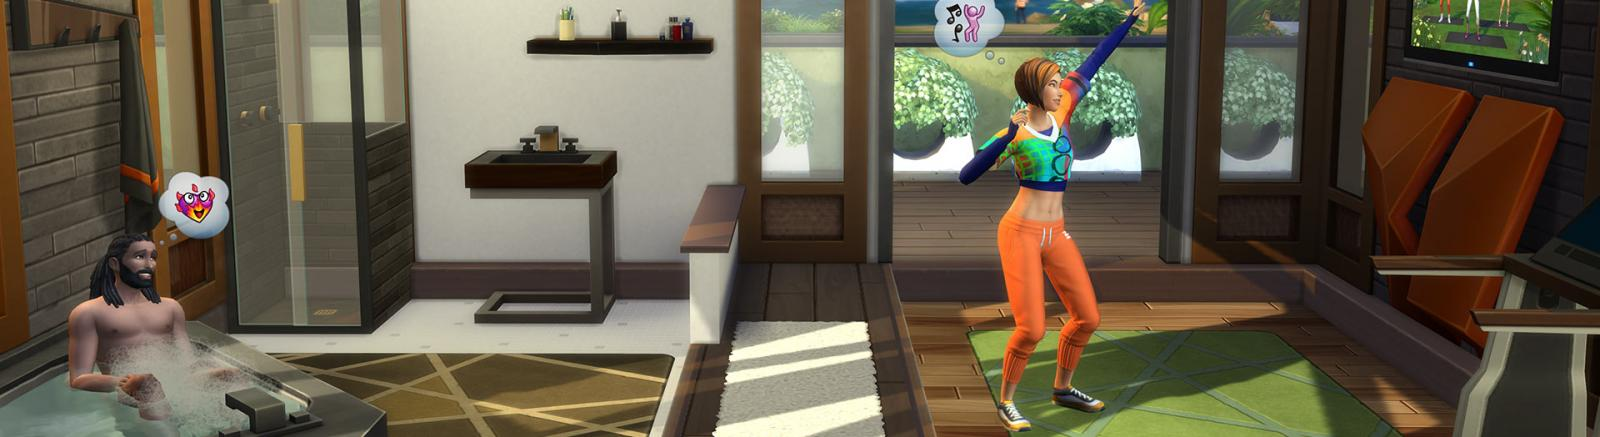 sims-4-official-screen-banner-kit-objets-fitness-stuff-03.jpg